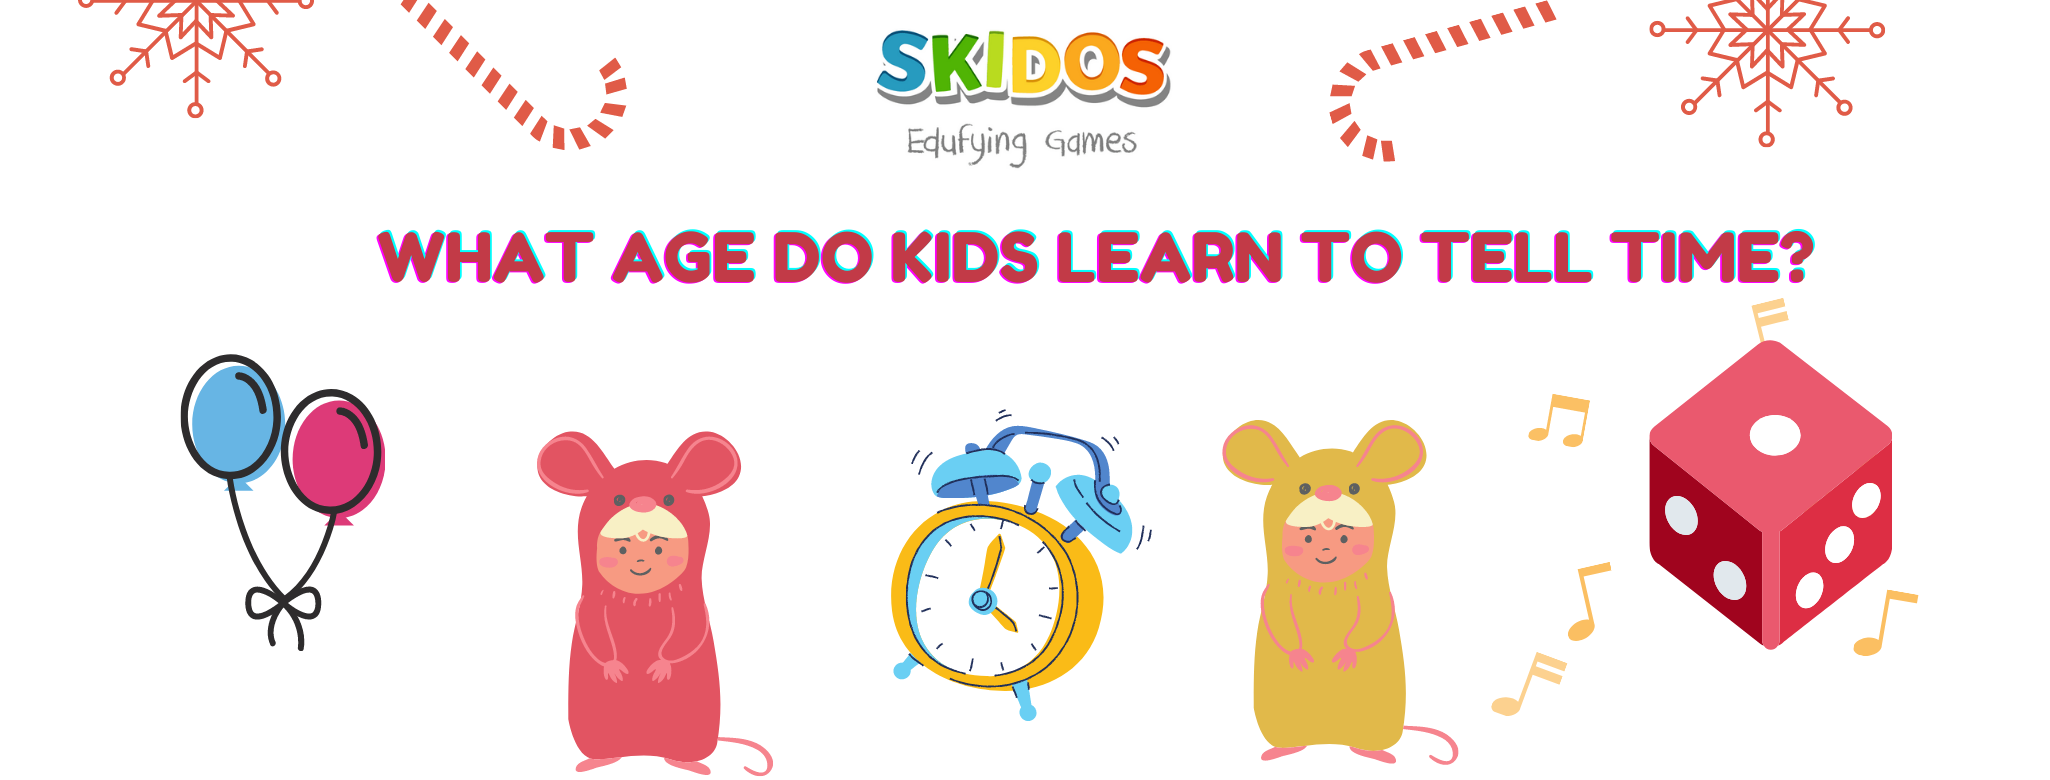 What age do kids learn to tell time